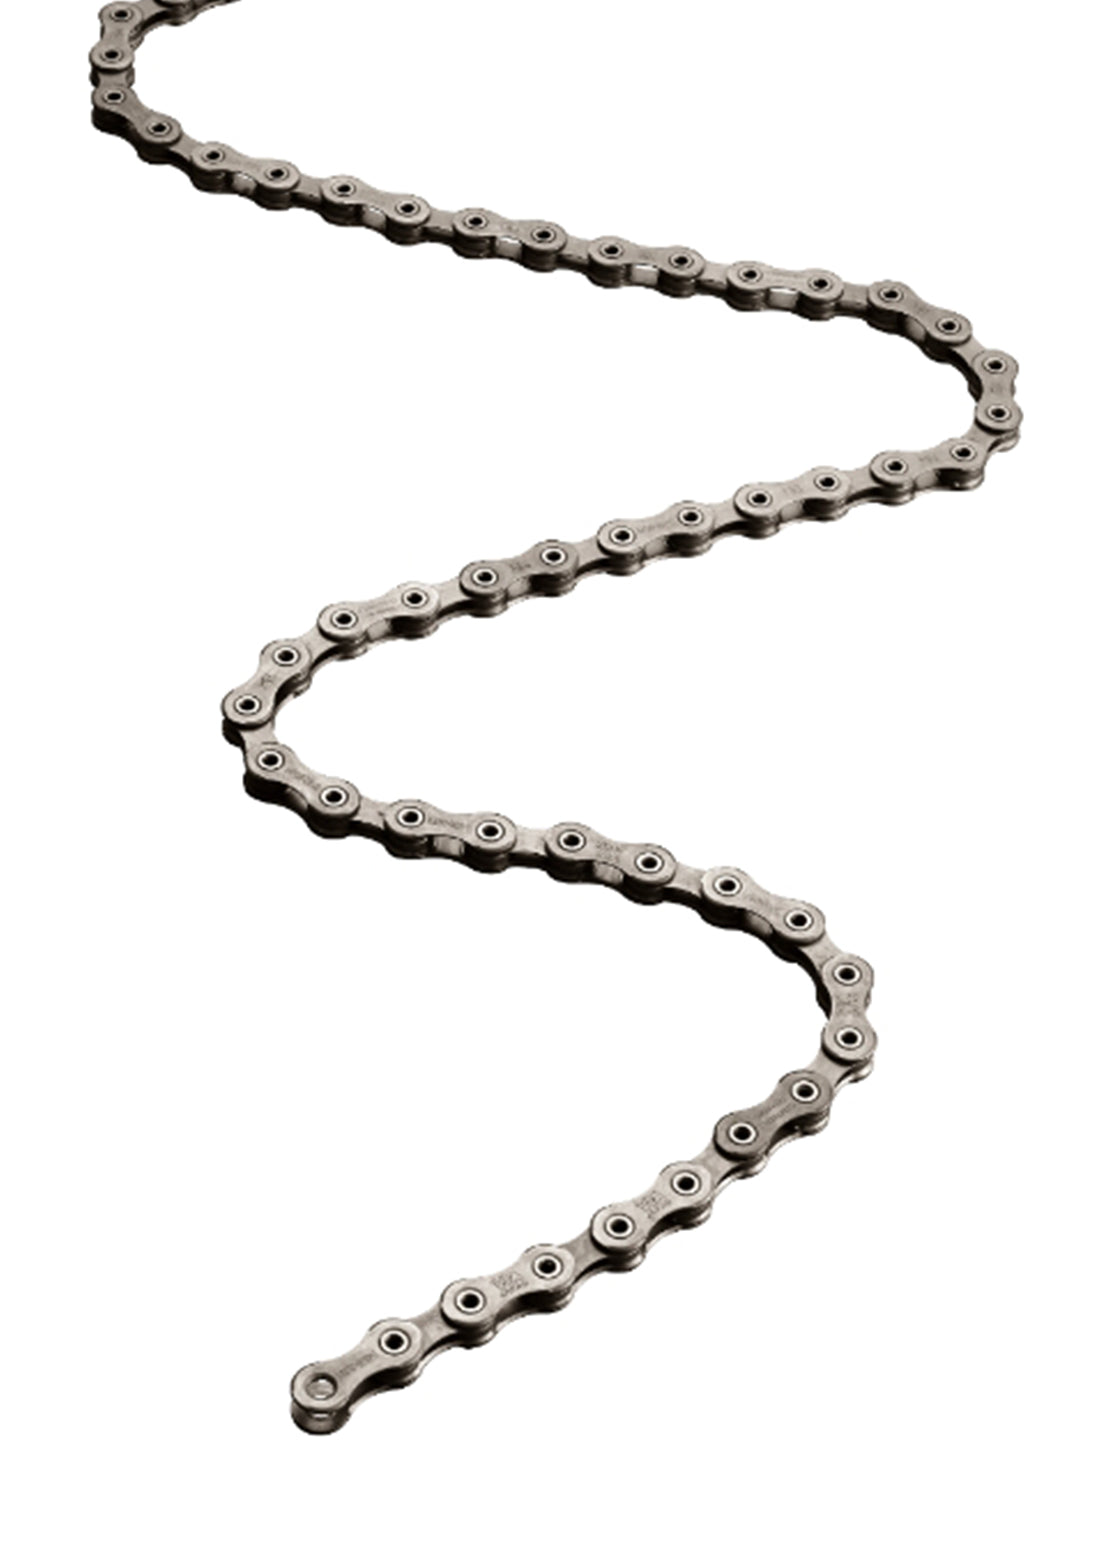 Shimano CN-HG901 116 Links Dura Ace/XTR 11-Speed Hollow Bike Chain Silver